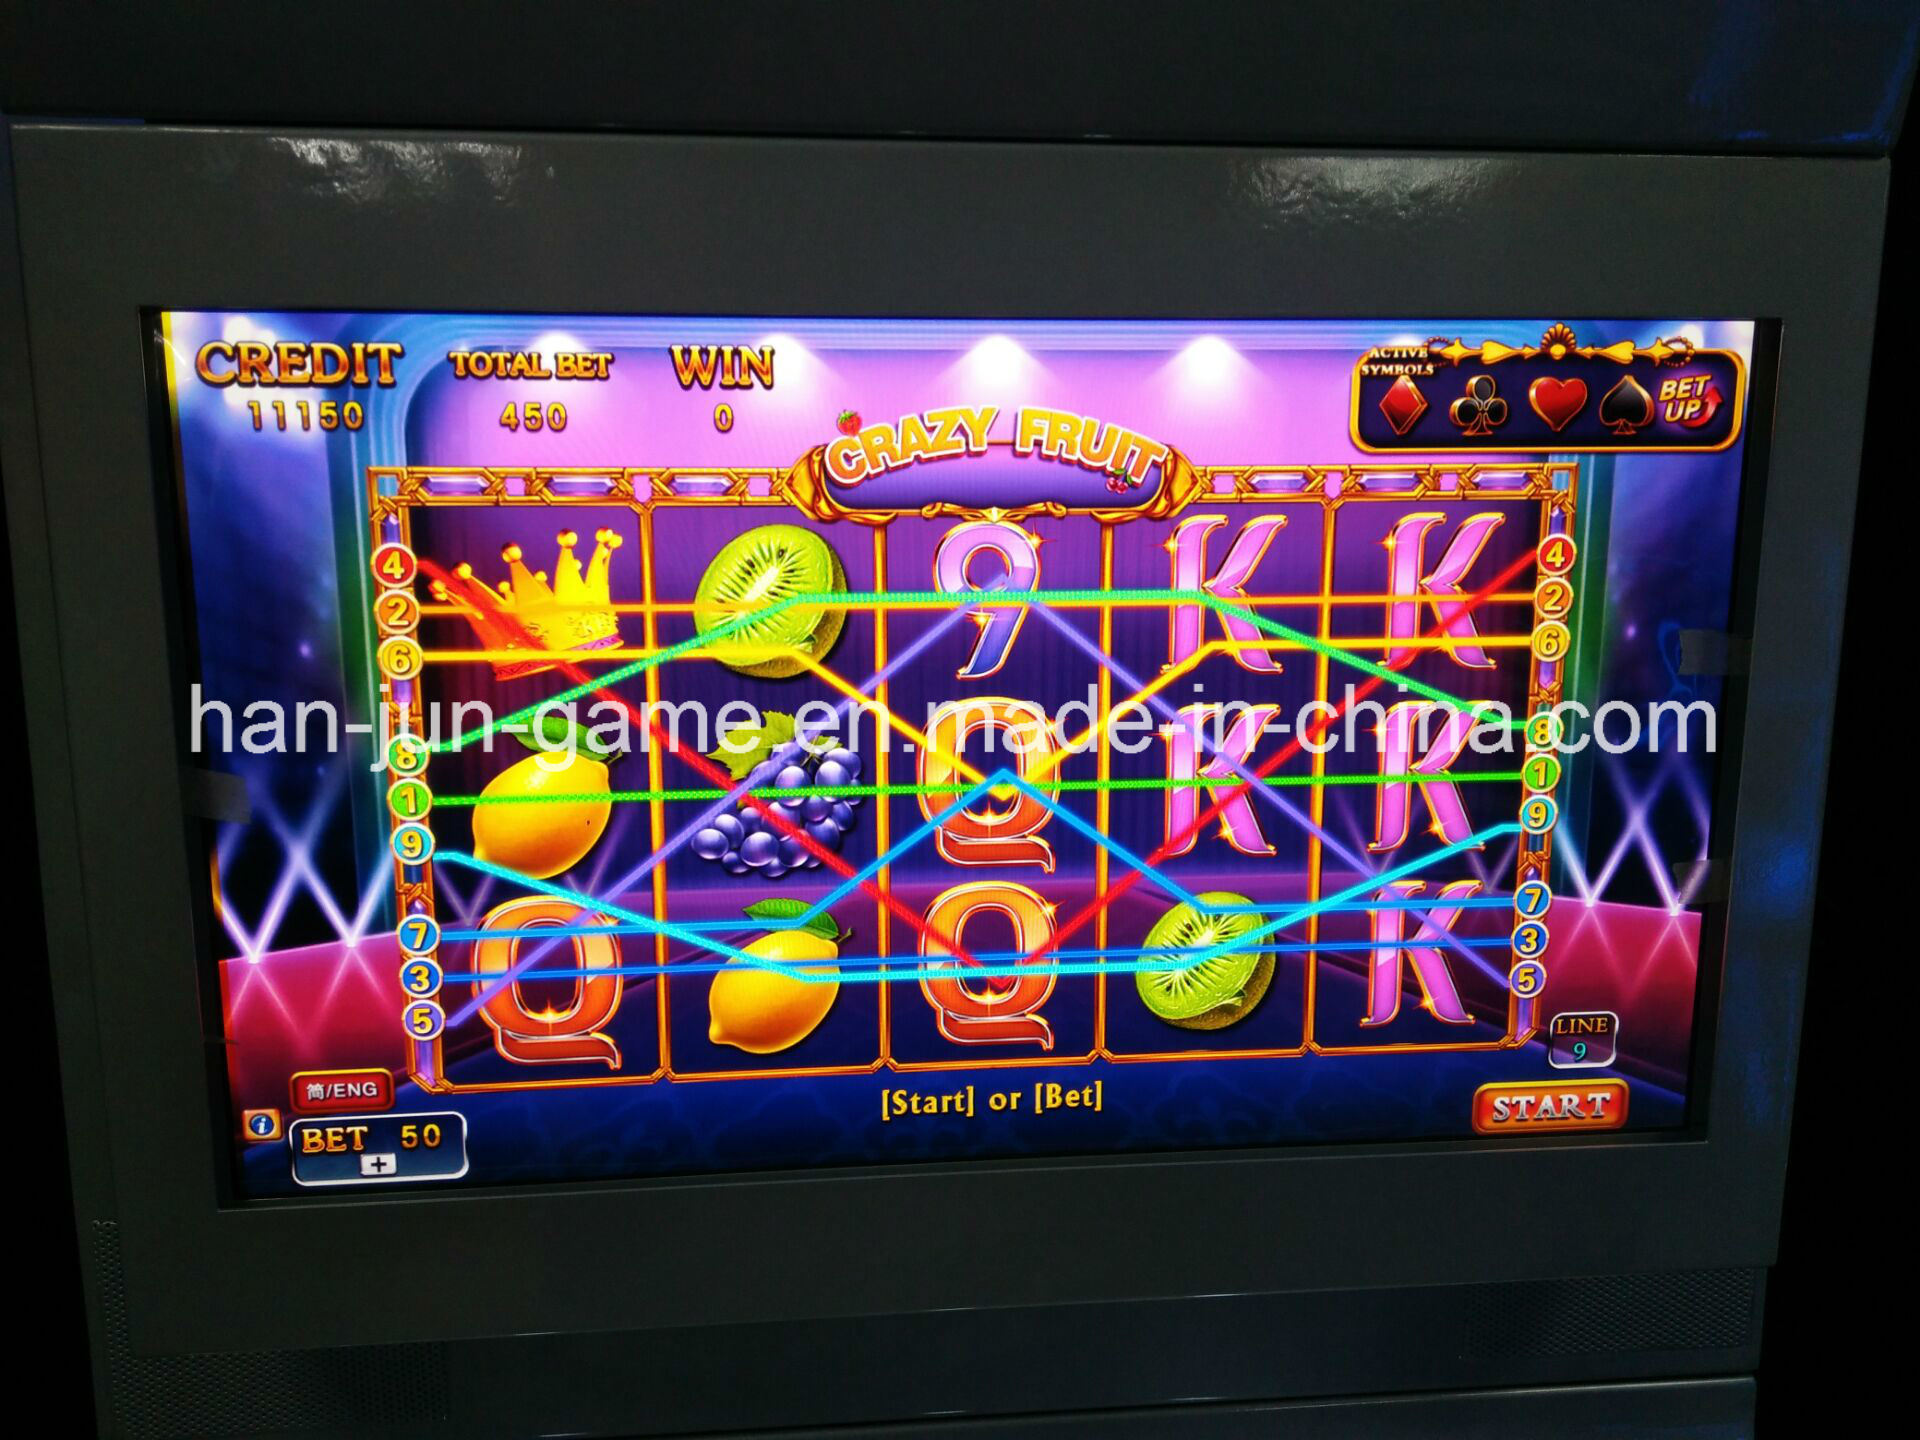 Jackpot Wiring Diagram Just Data Symbols For Display China Wholesale Crazy Fruit Slot Game Video Arcade Machines Diagrams Dummies